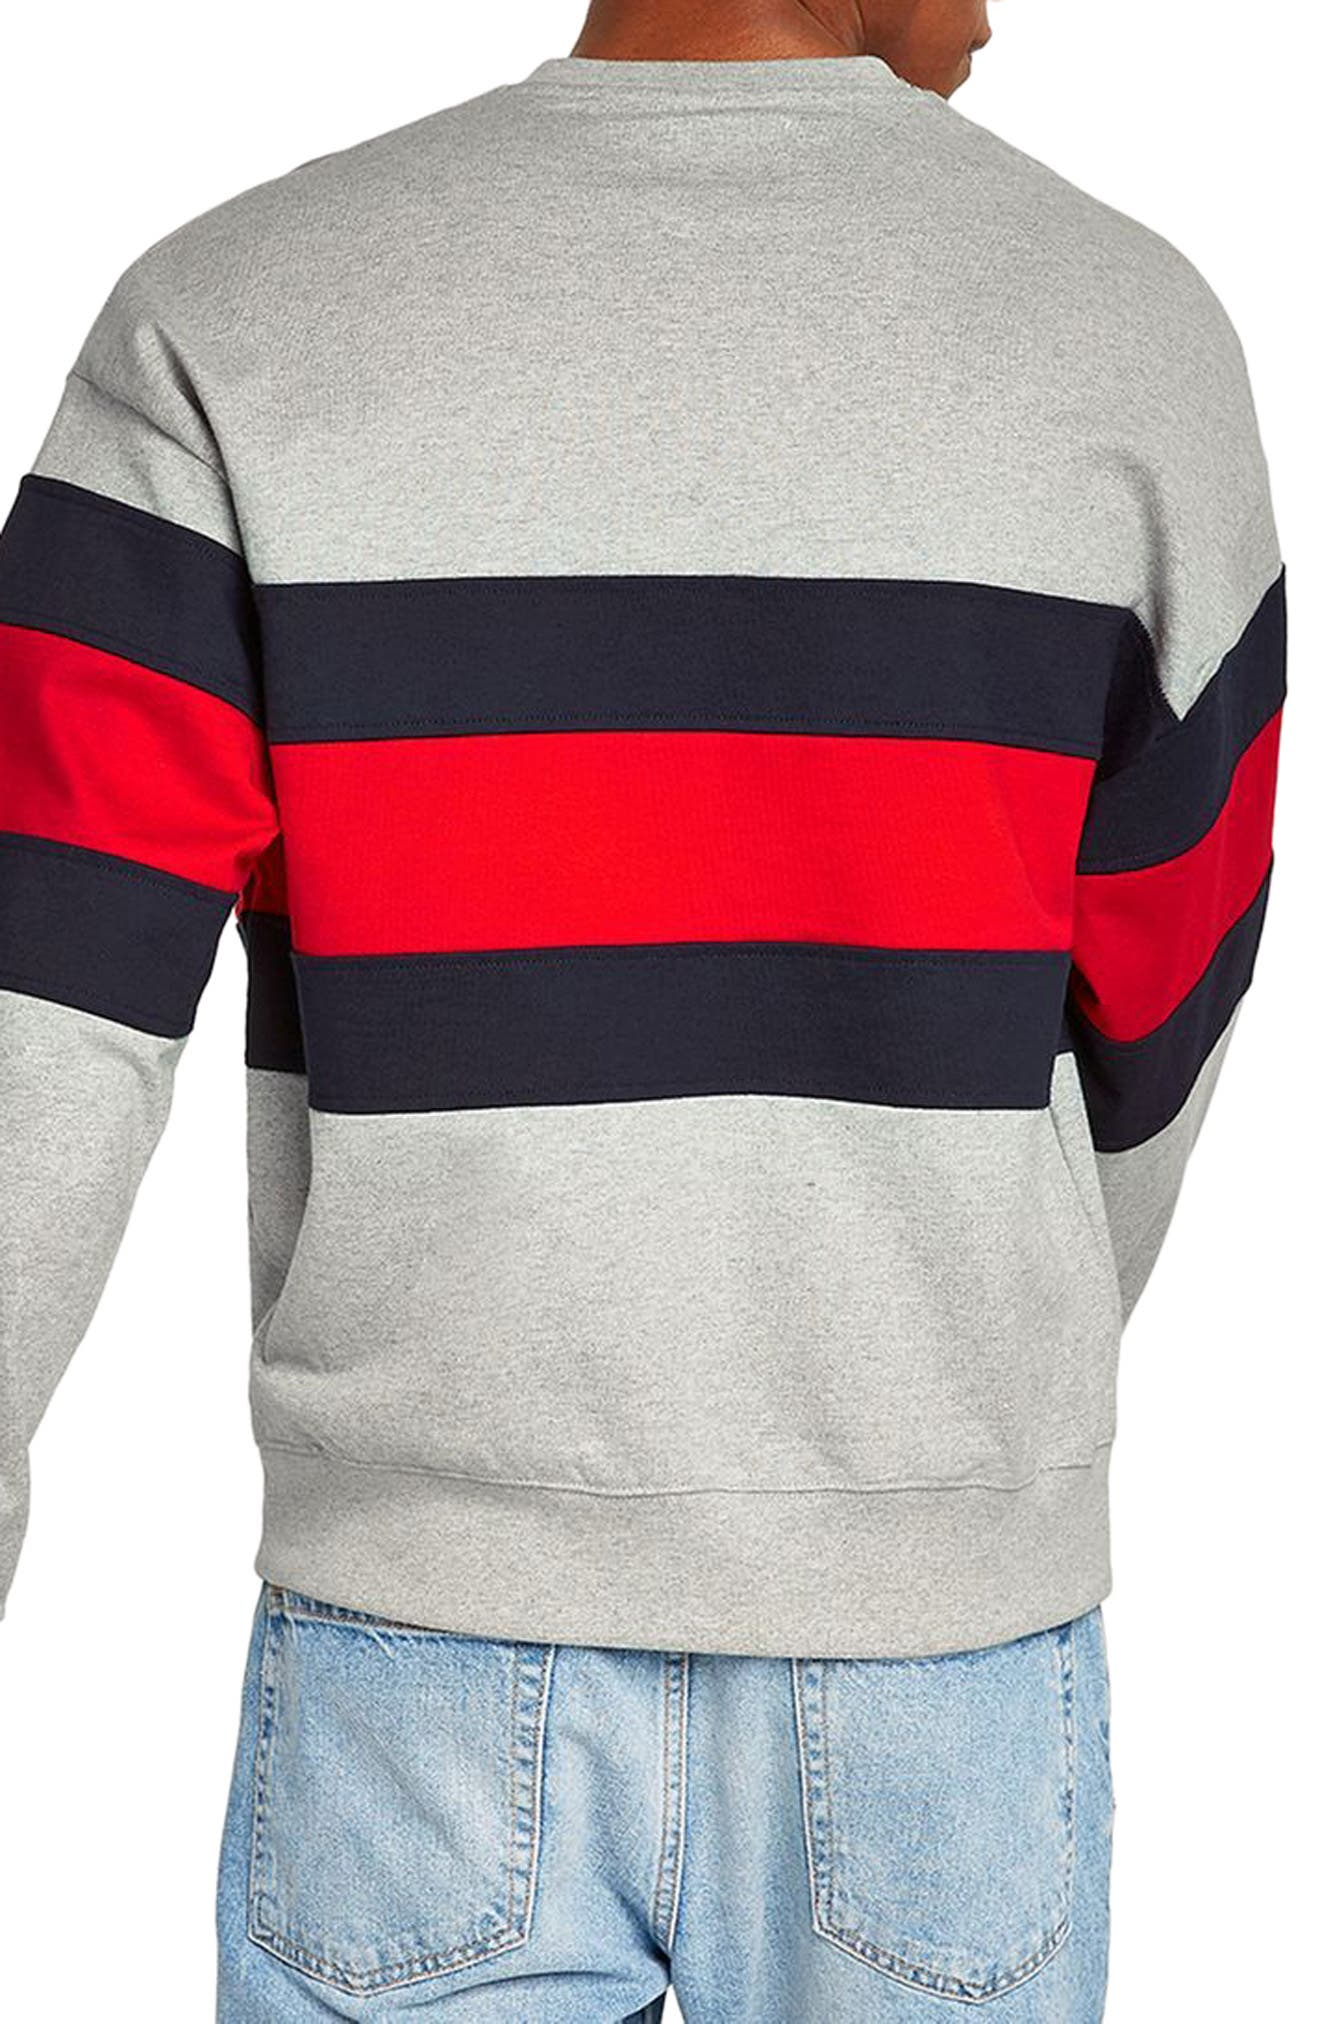 Classic Fit Striped Sweatshirt,                             Alternate thumbnail 2, color,                             LIGHT GREY MULTI